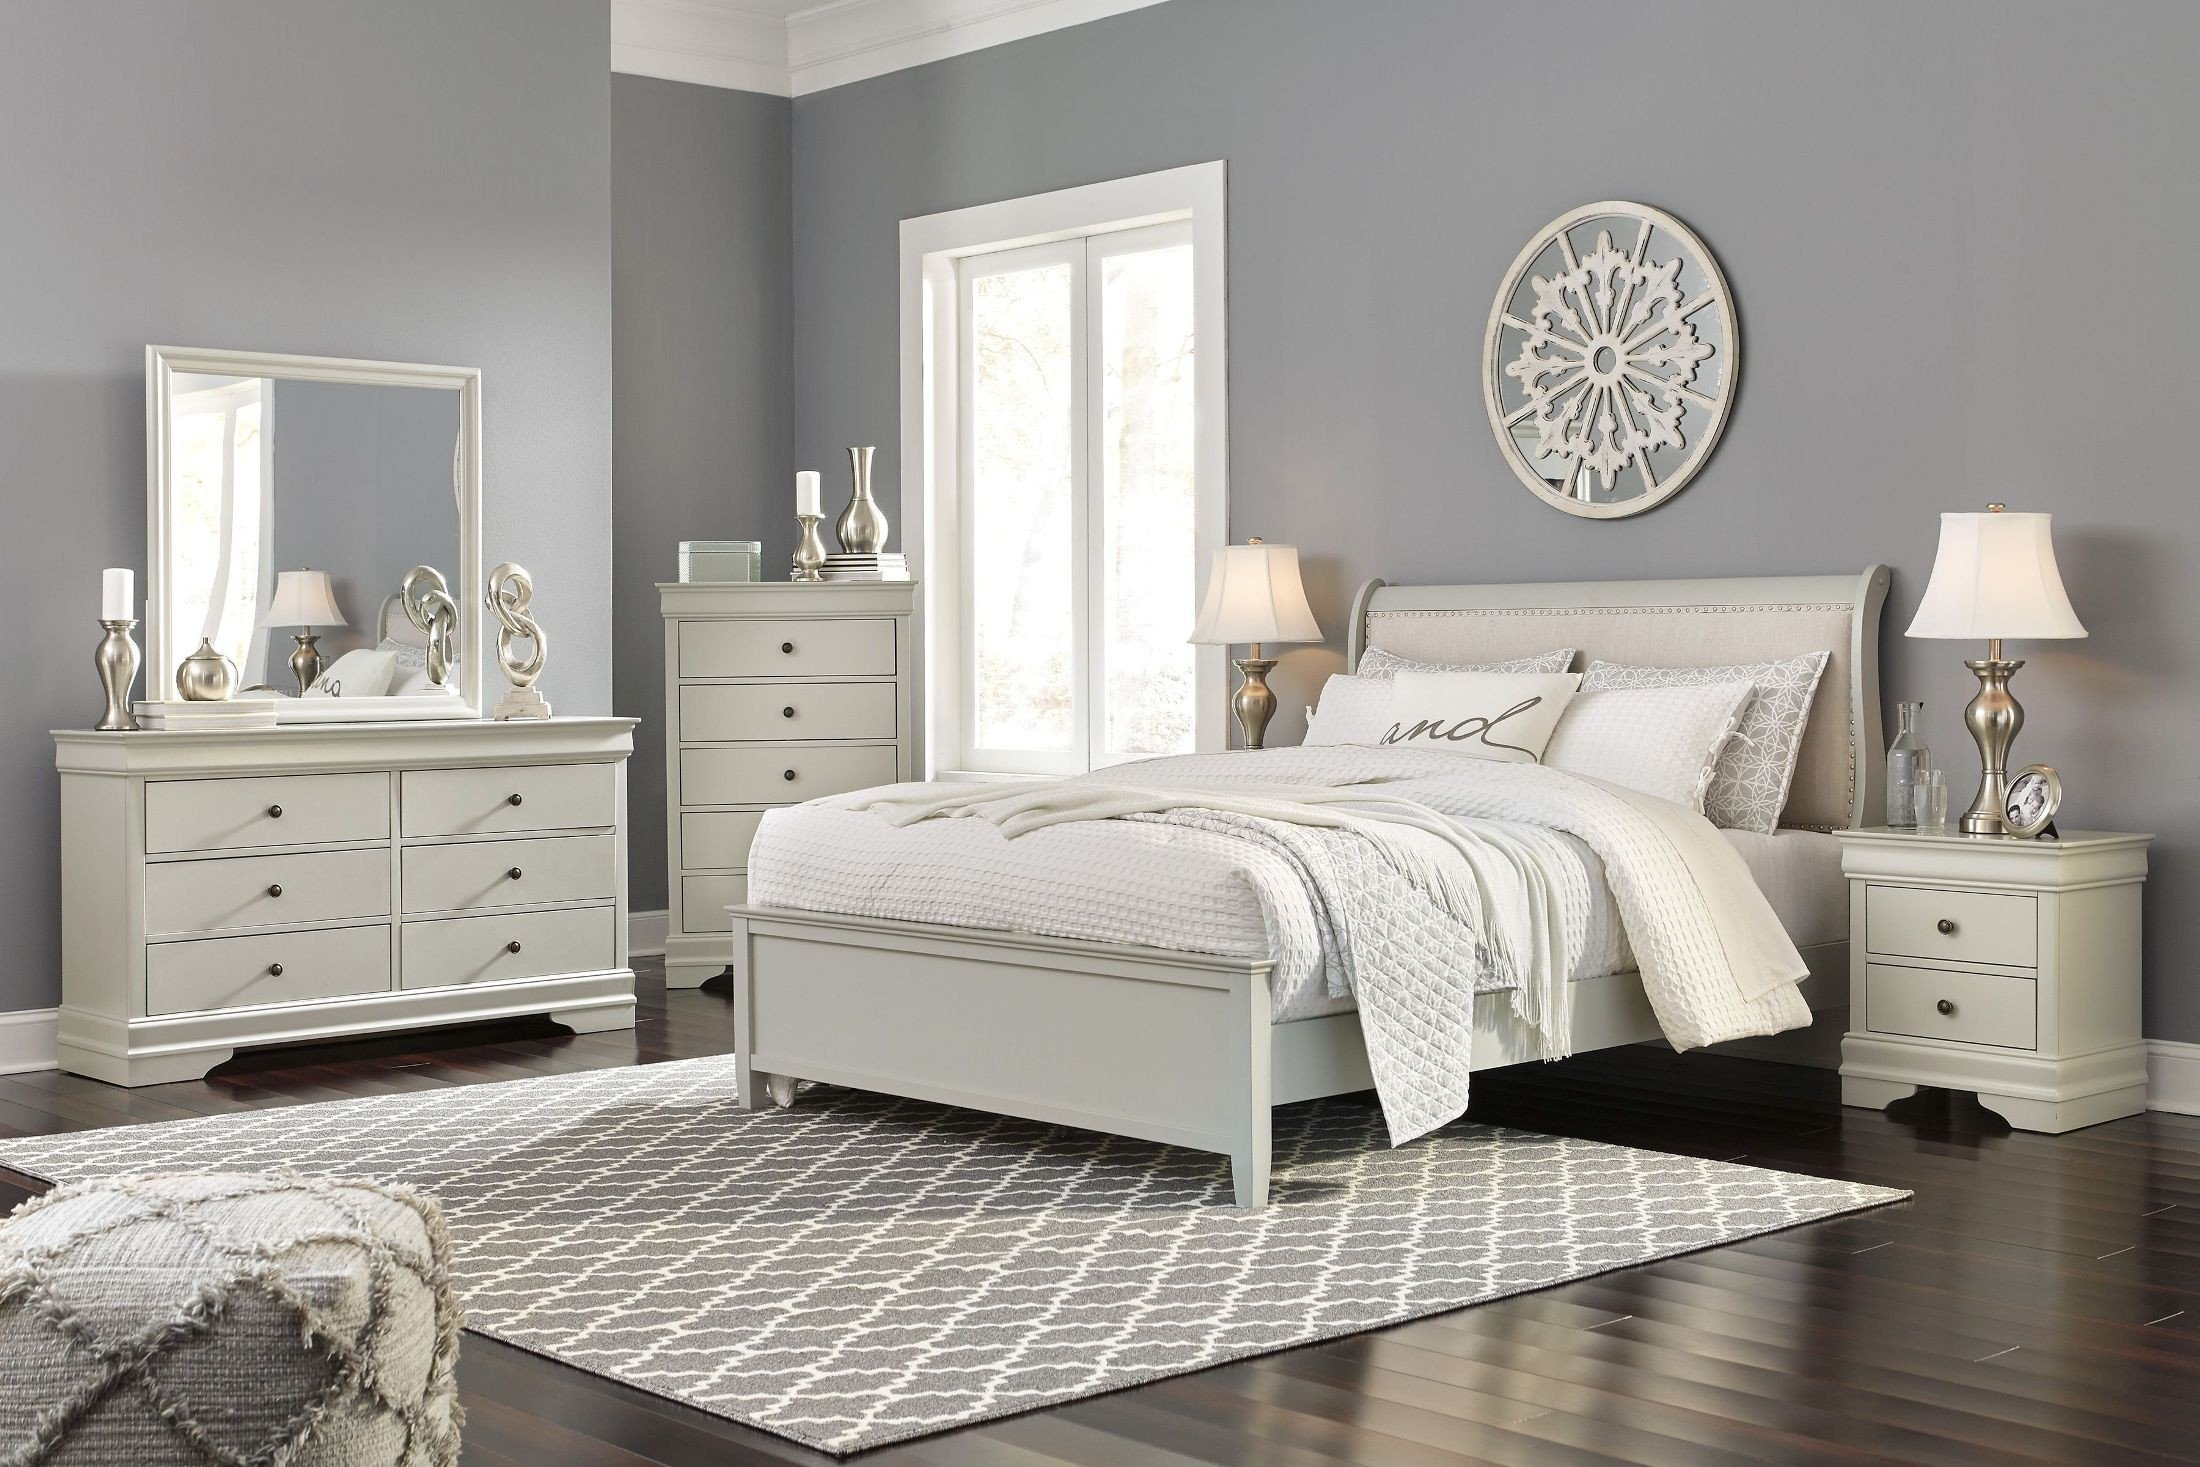 Rooms to Go Bedroom Set King Lovely Emma Mason Signature Jarred 5 Piece Sleigh Bedroom Set In Gray